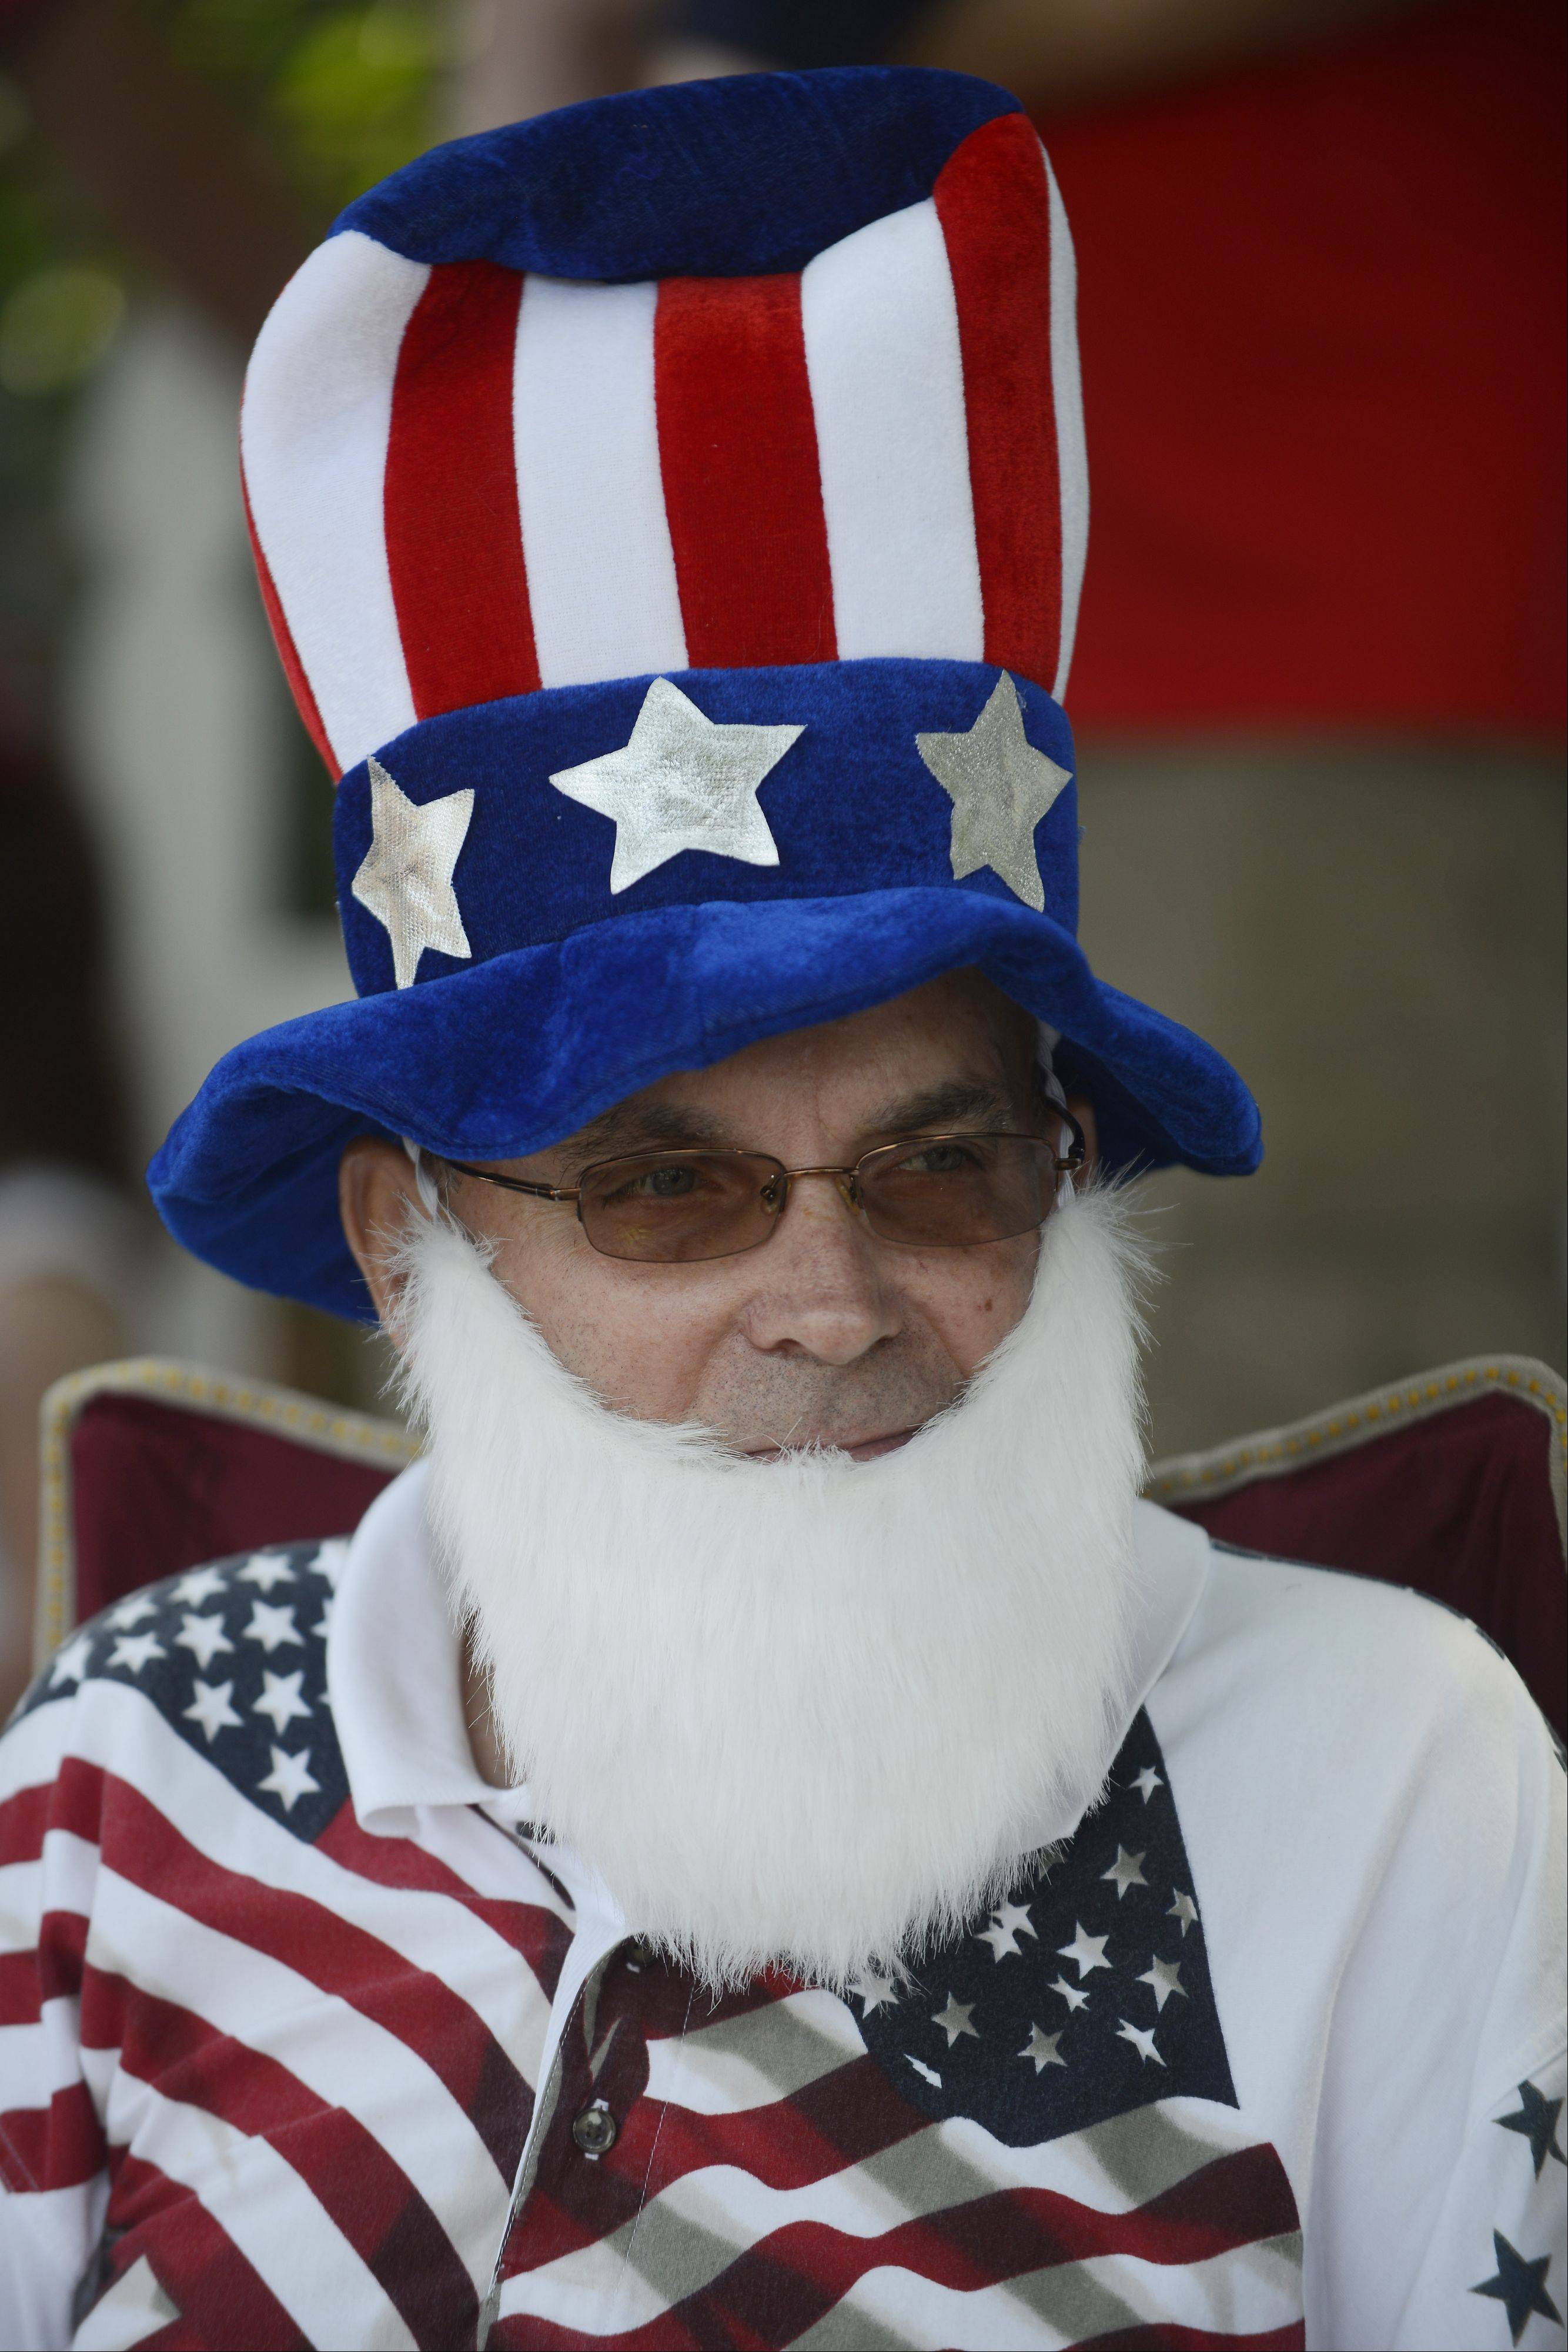 Jim Grzenia of Arlington Heights wears and Uncle Sam hat and beard while watching the Arlington Heights Fourth of July parade Thursday.